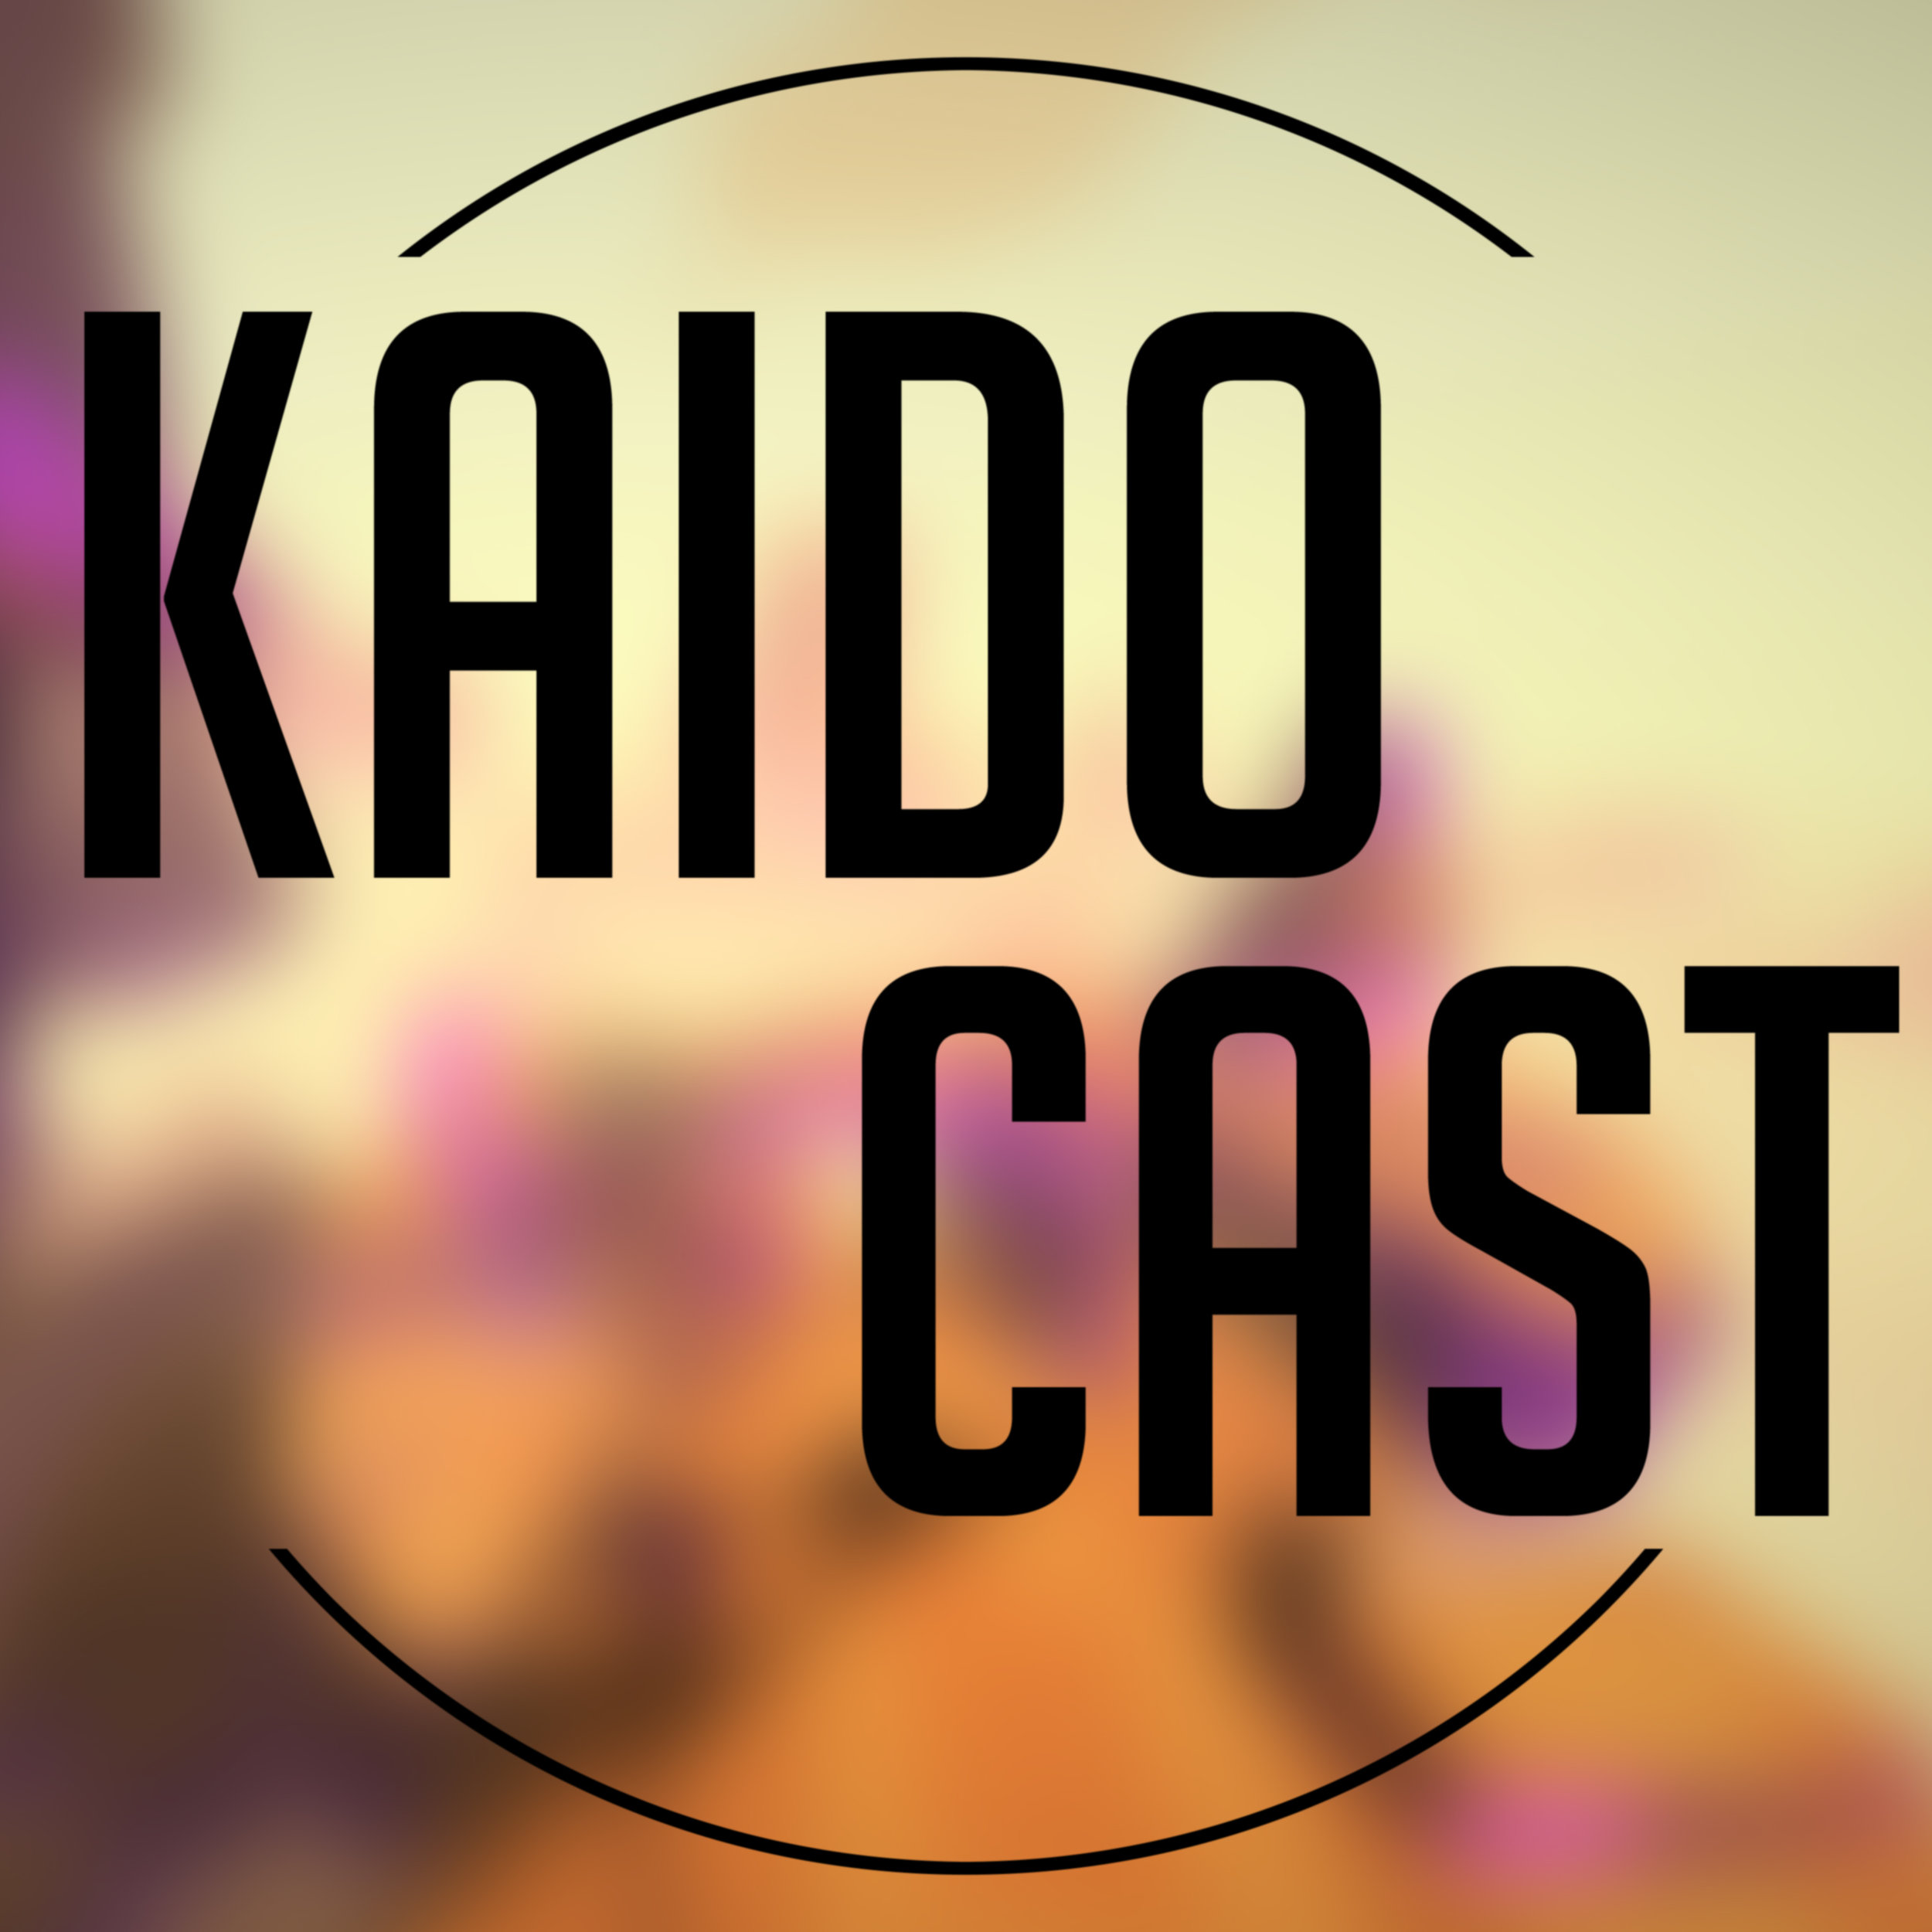 KAIDO Cast 27 - Zac Goes to College - It's a new year and new episode of the KAIDO Cast. Zac and Dave discuss what they have play over the break, and what they are most anticipating in 2018!